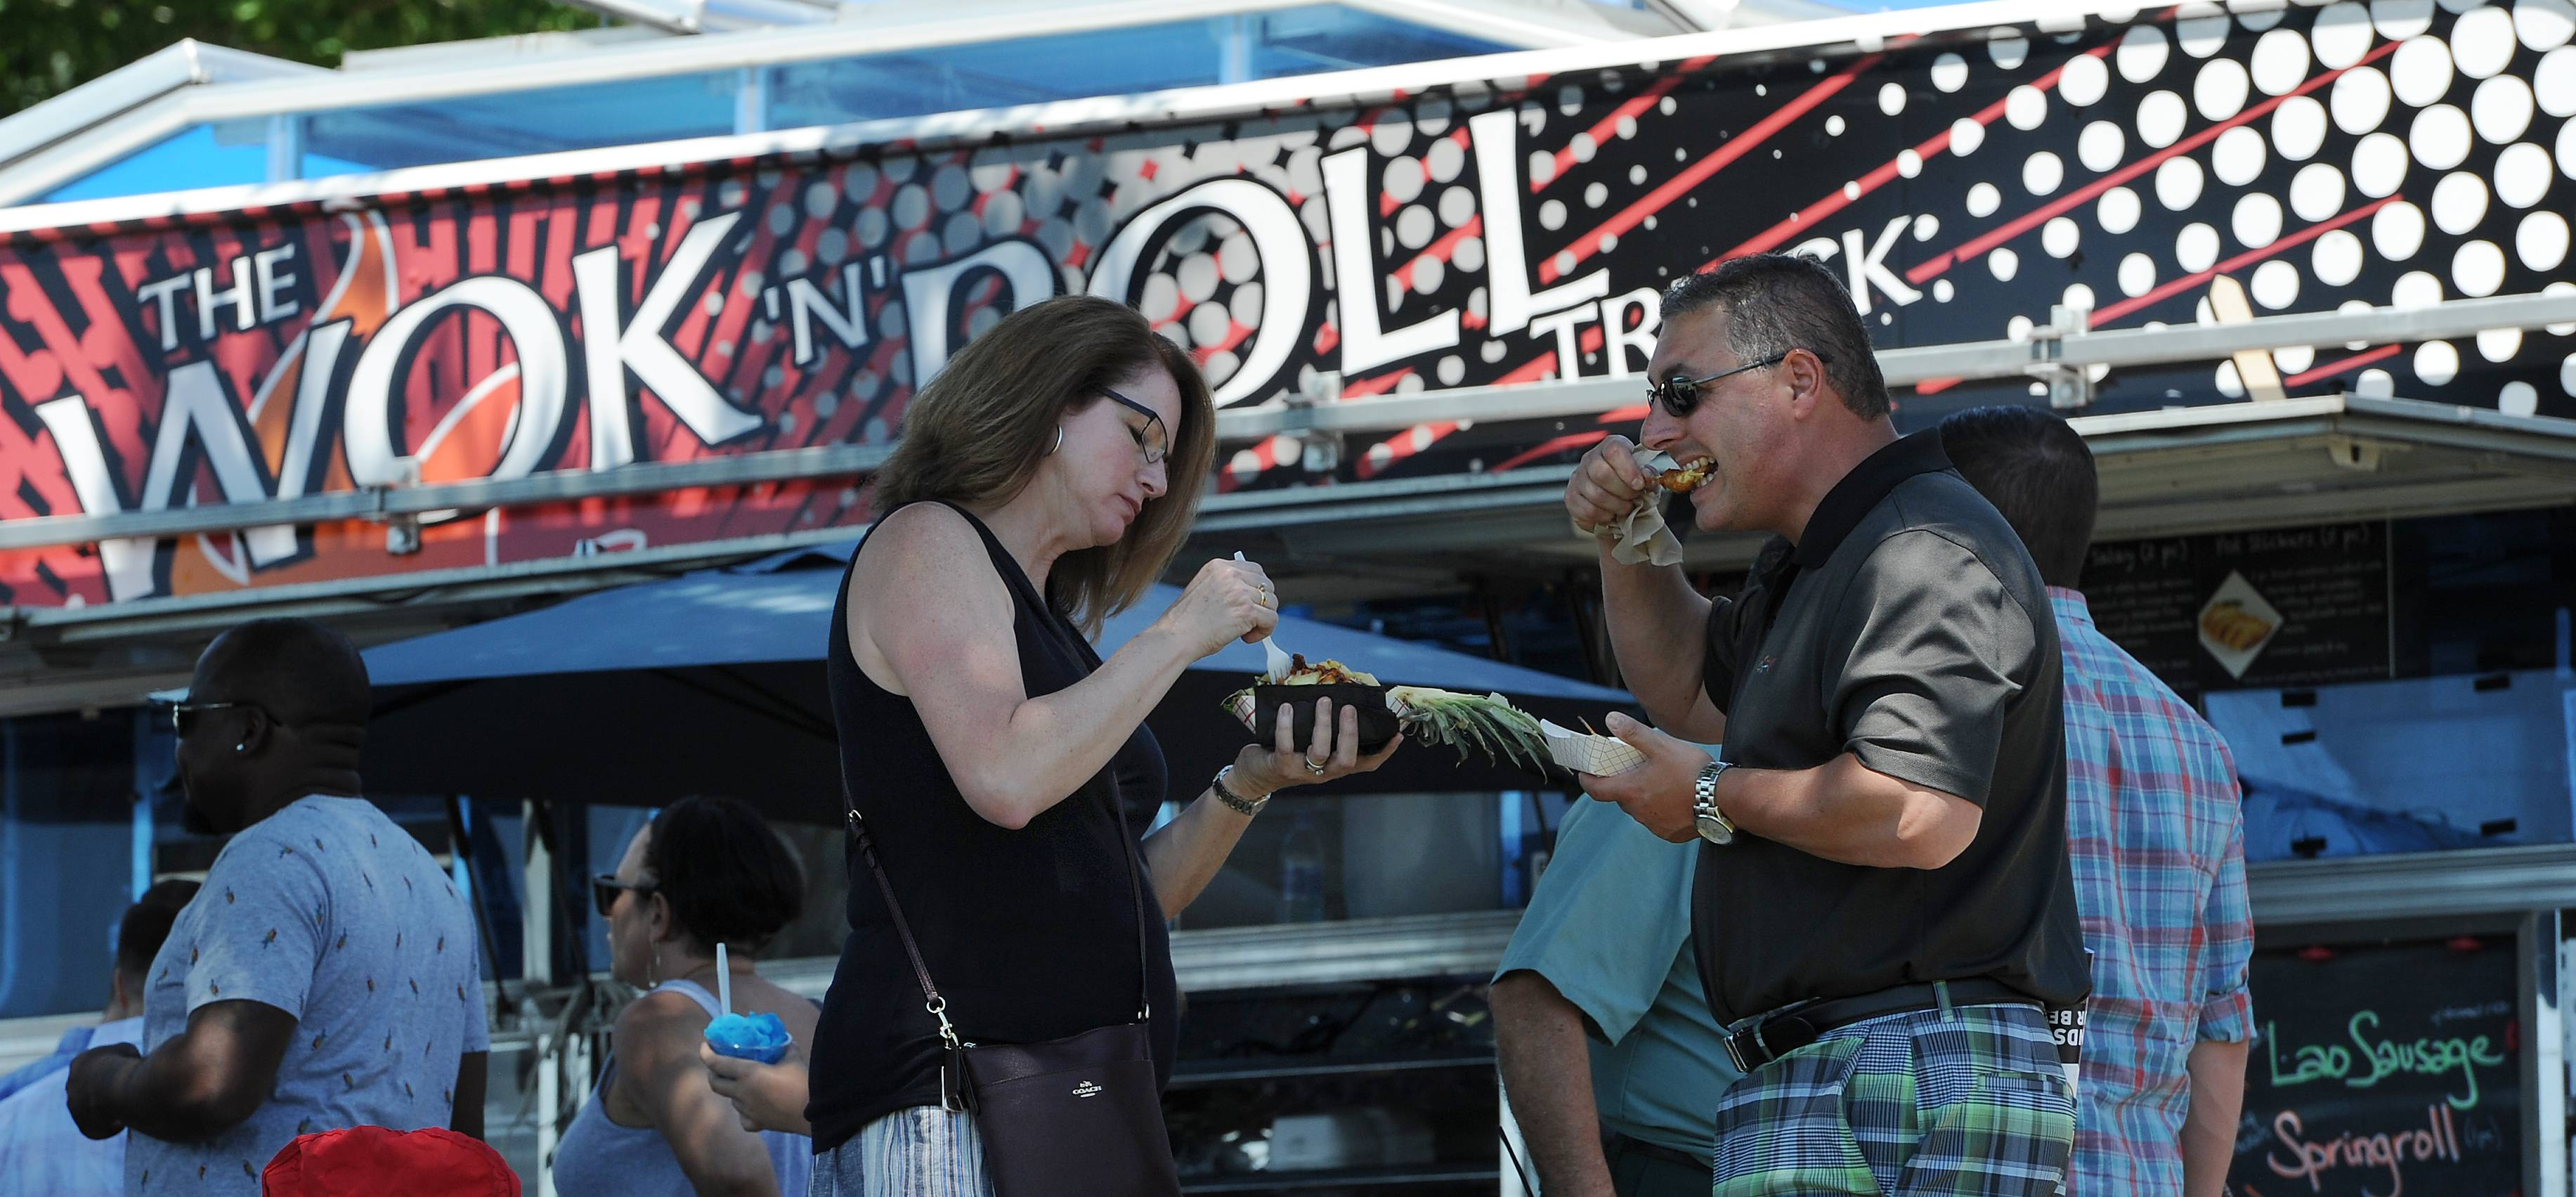 Rocco and Darlene Morisco of Elgin sample the chicken and pineapple bowl as thousands of people turn out Saturday for the 5th annual Food Truck Festival at Arlington Park.